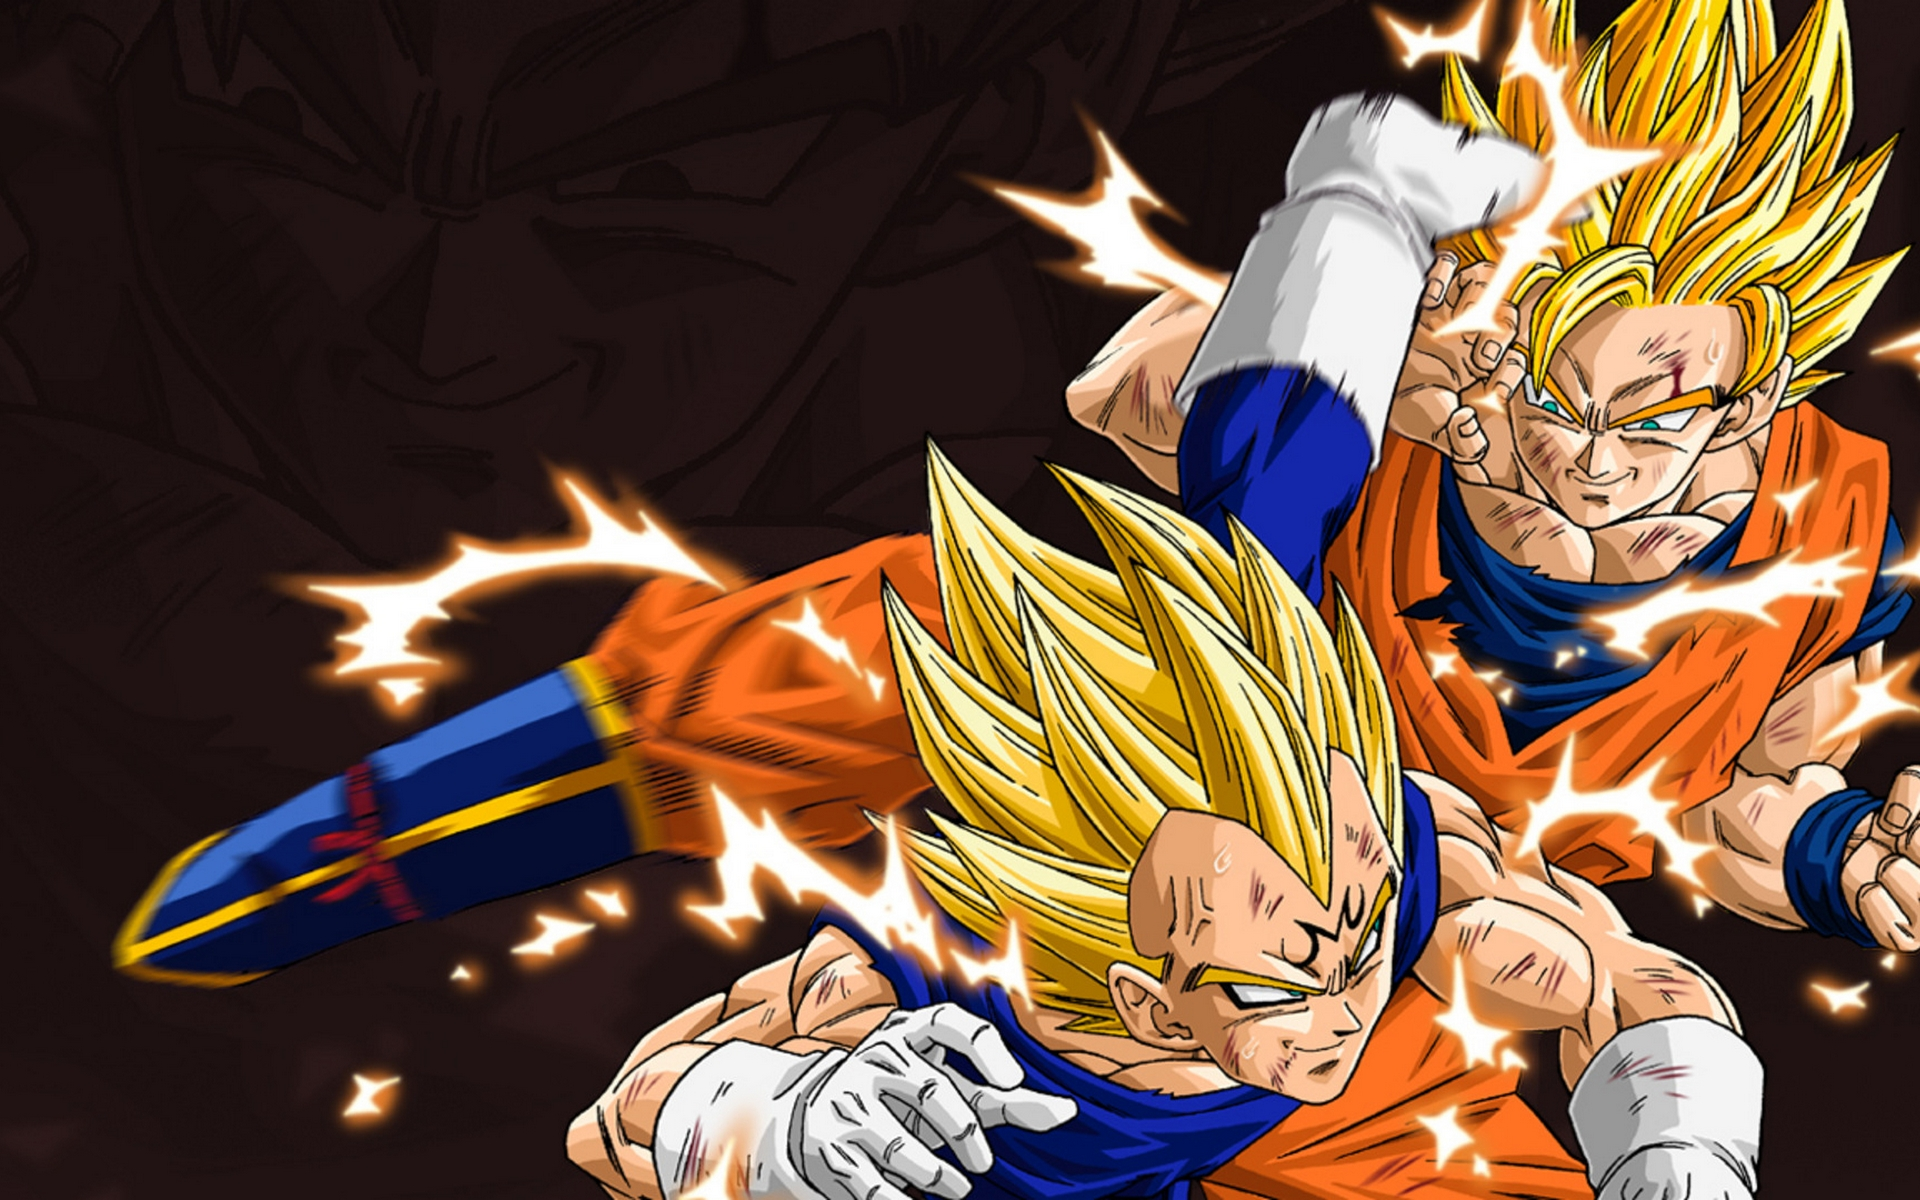 Free Download Dragon Ball Z Hd Wallpapers 1080p Goku